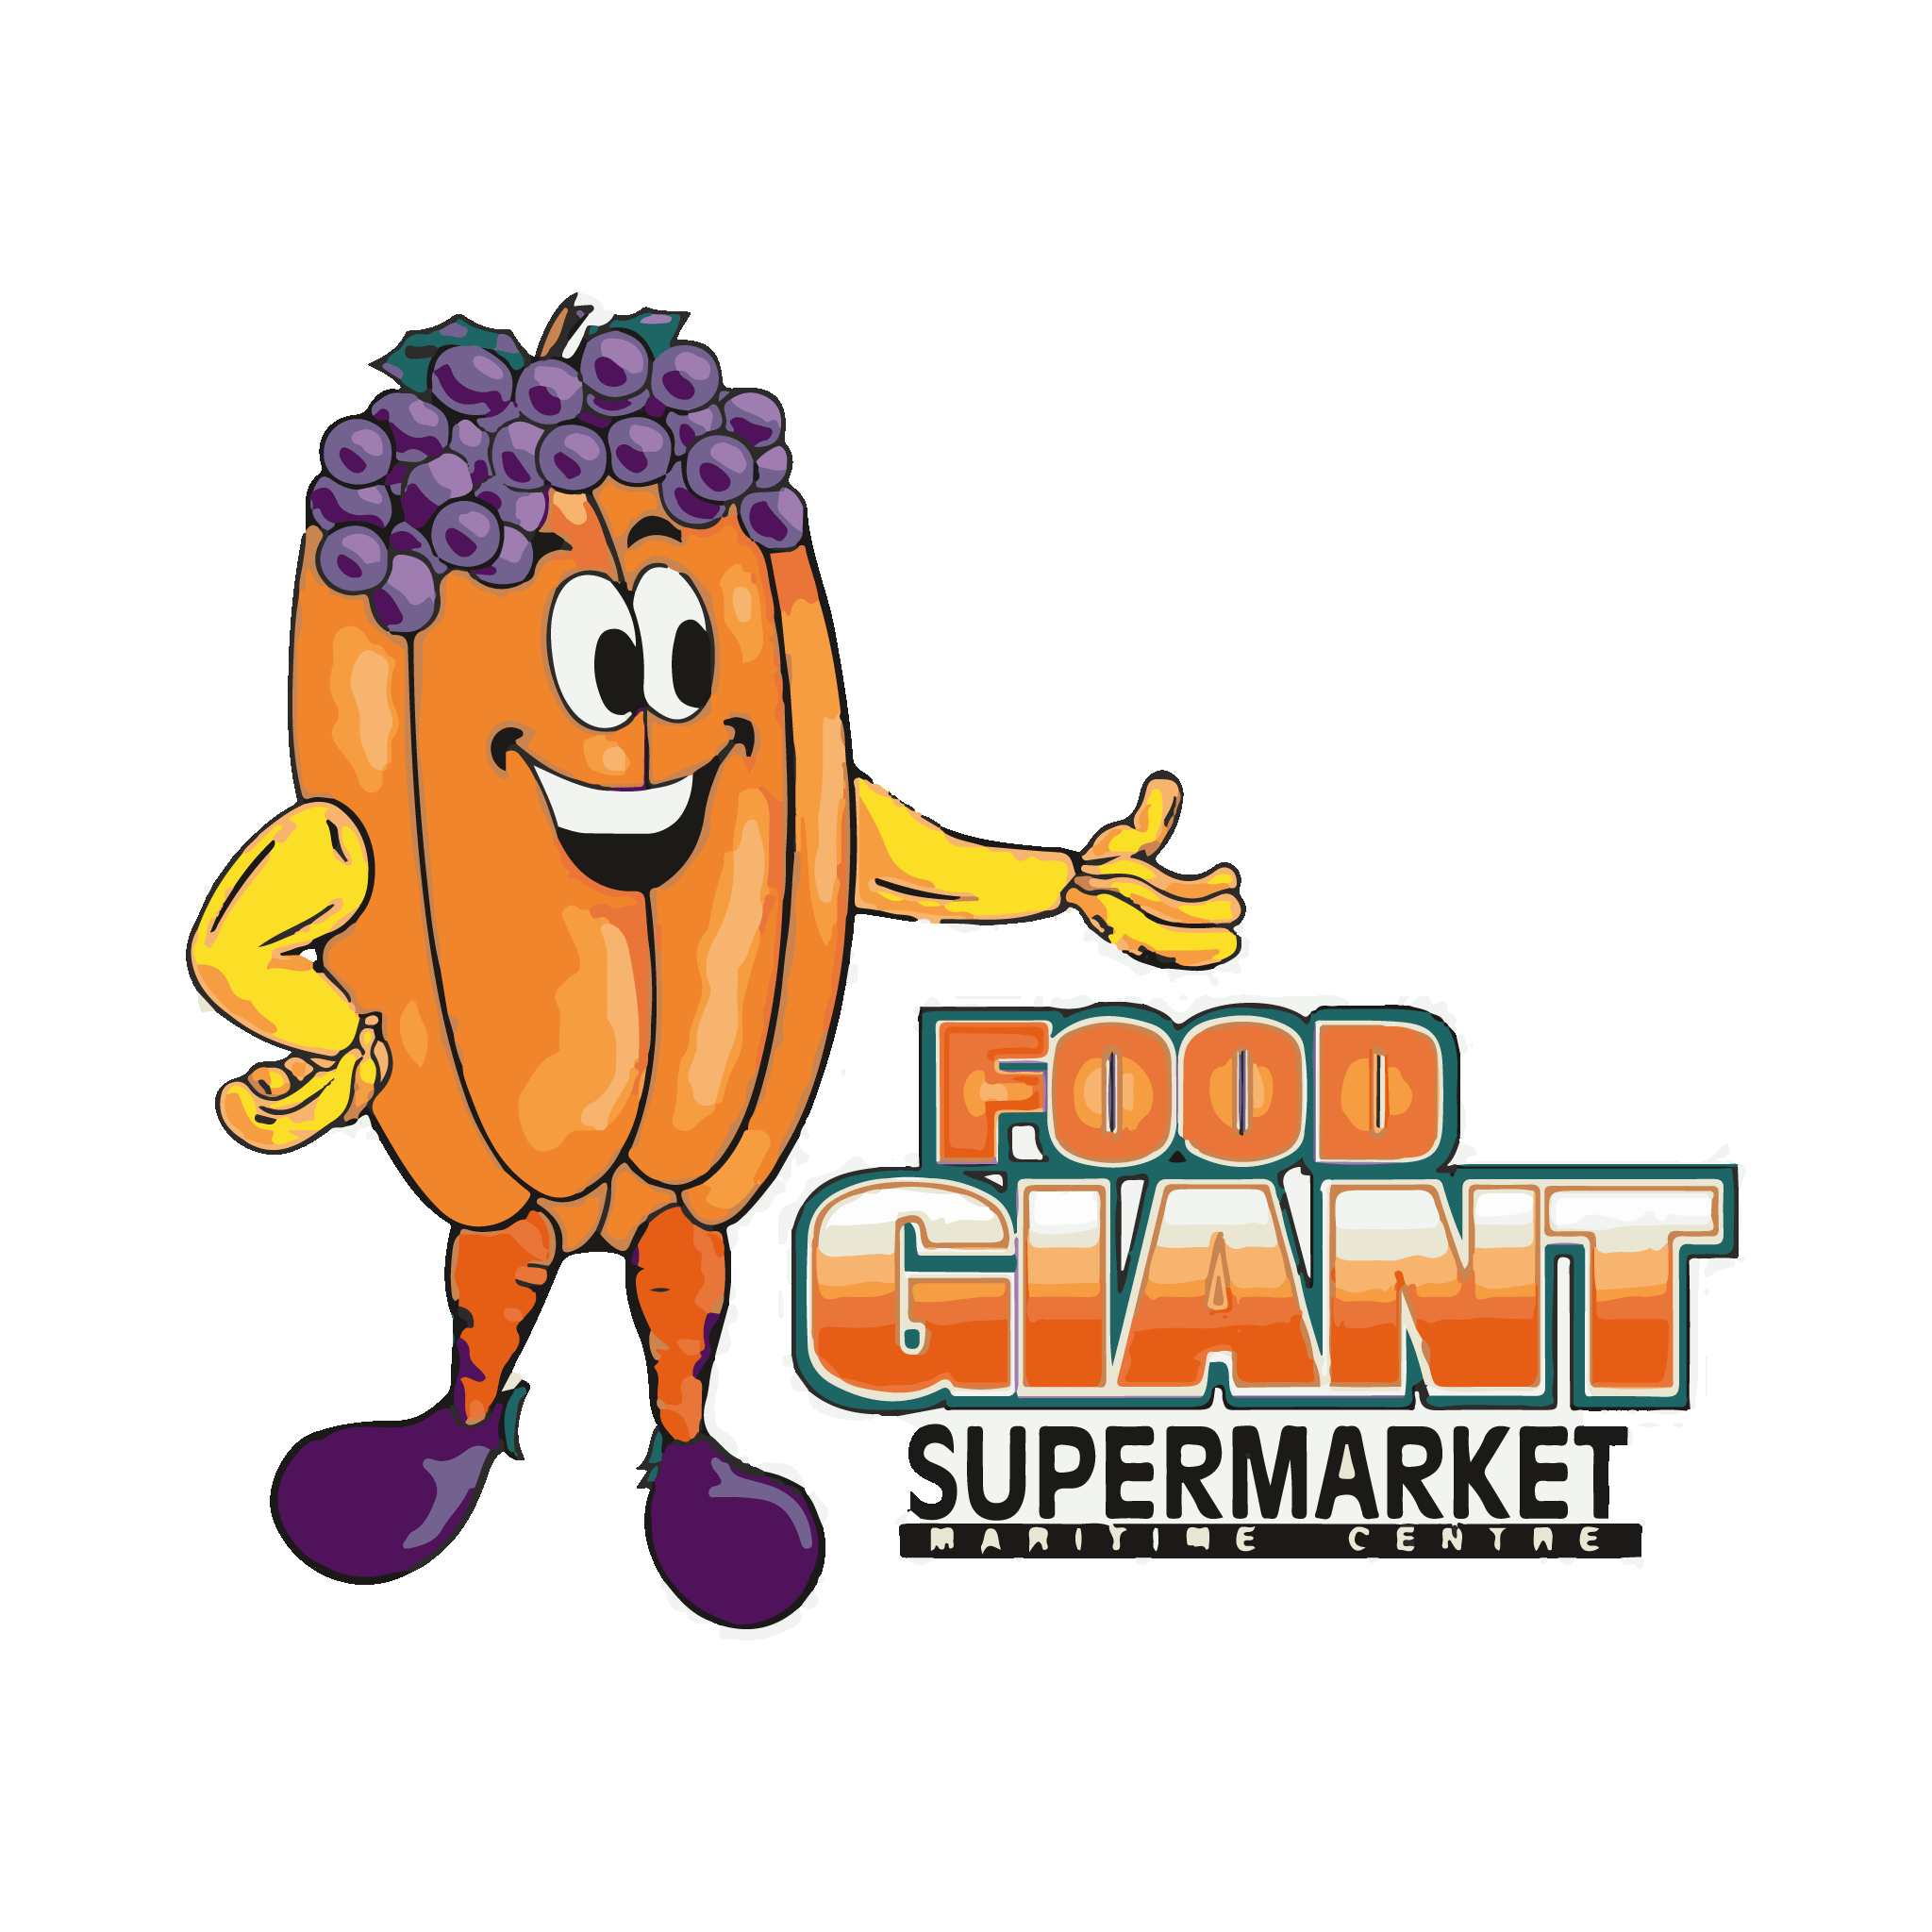 graphic freeuse download Supermarket clipart busy. Food giant the maritime